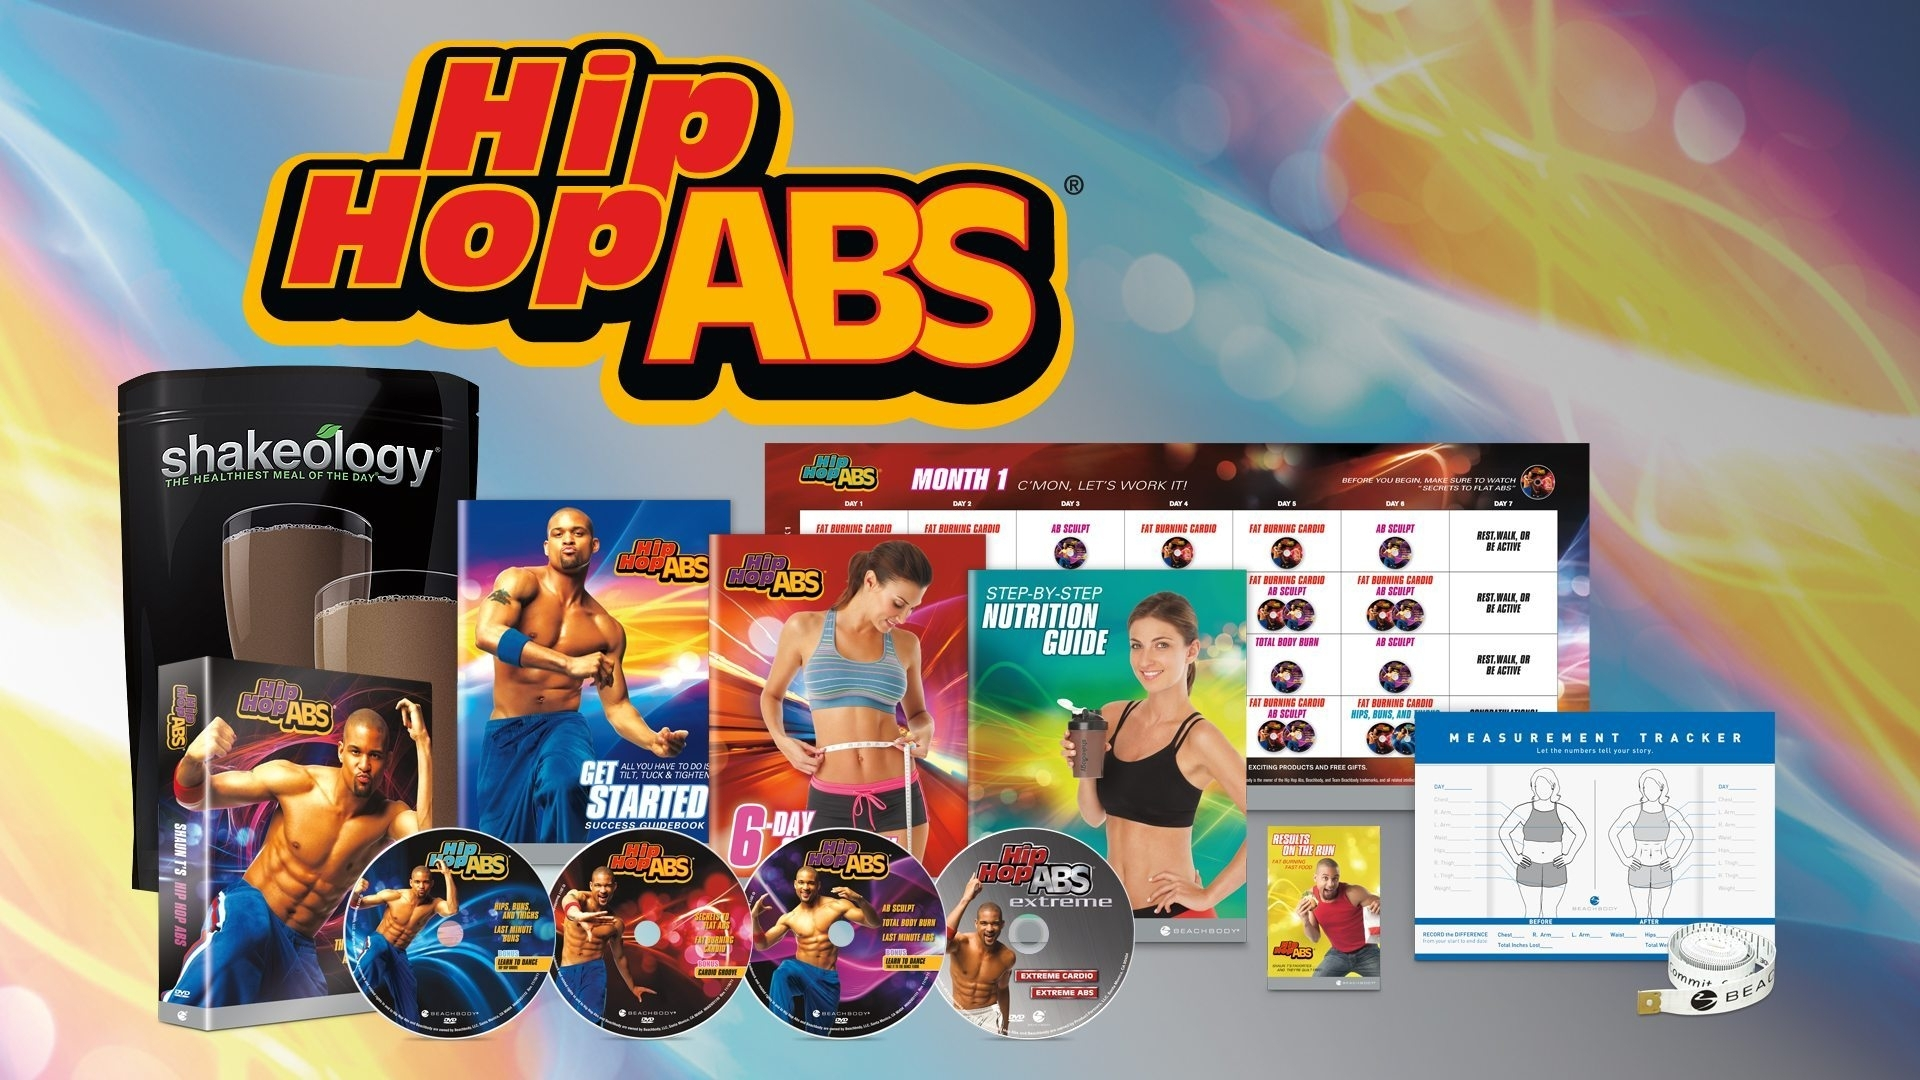 Are You A Middle Ager Wanting To Ease Into Fitness? Do Hip Hop Abs pertaining to Hip Hop Abs Month 2 Calendar